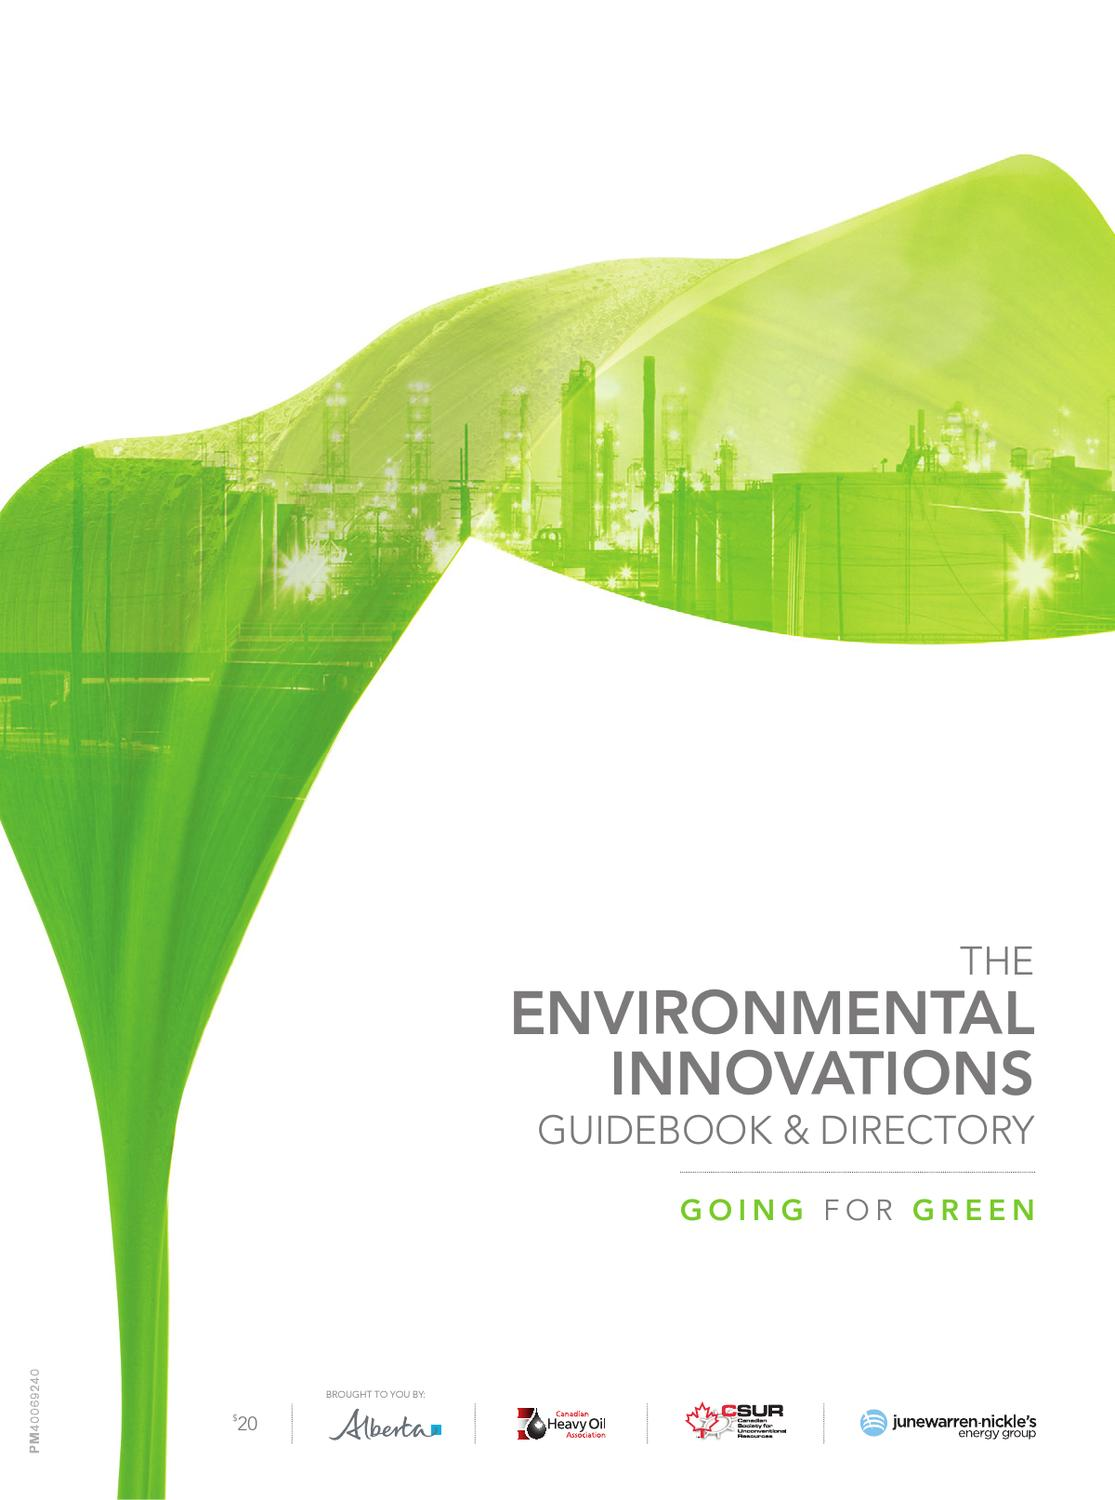 the effectiveness of european union environmental policy matthews duncan grant wyn newell peter dr